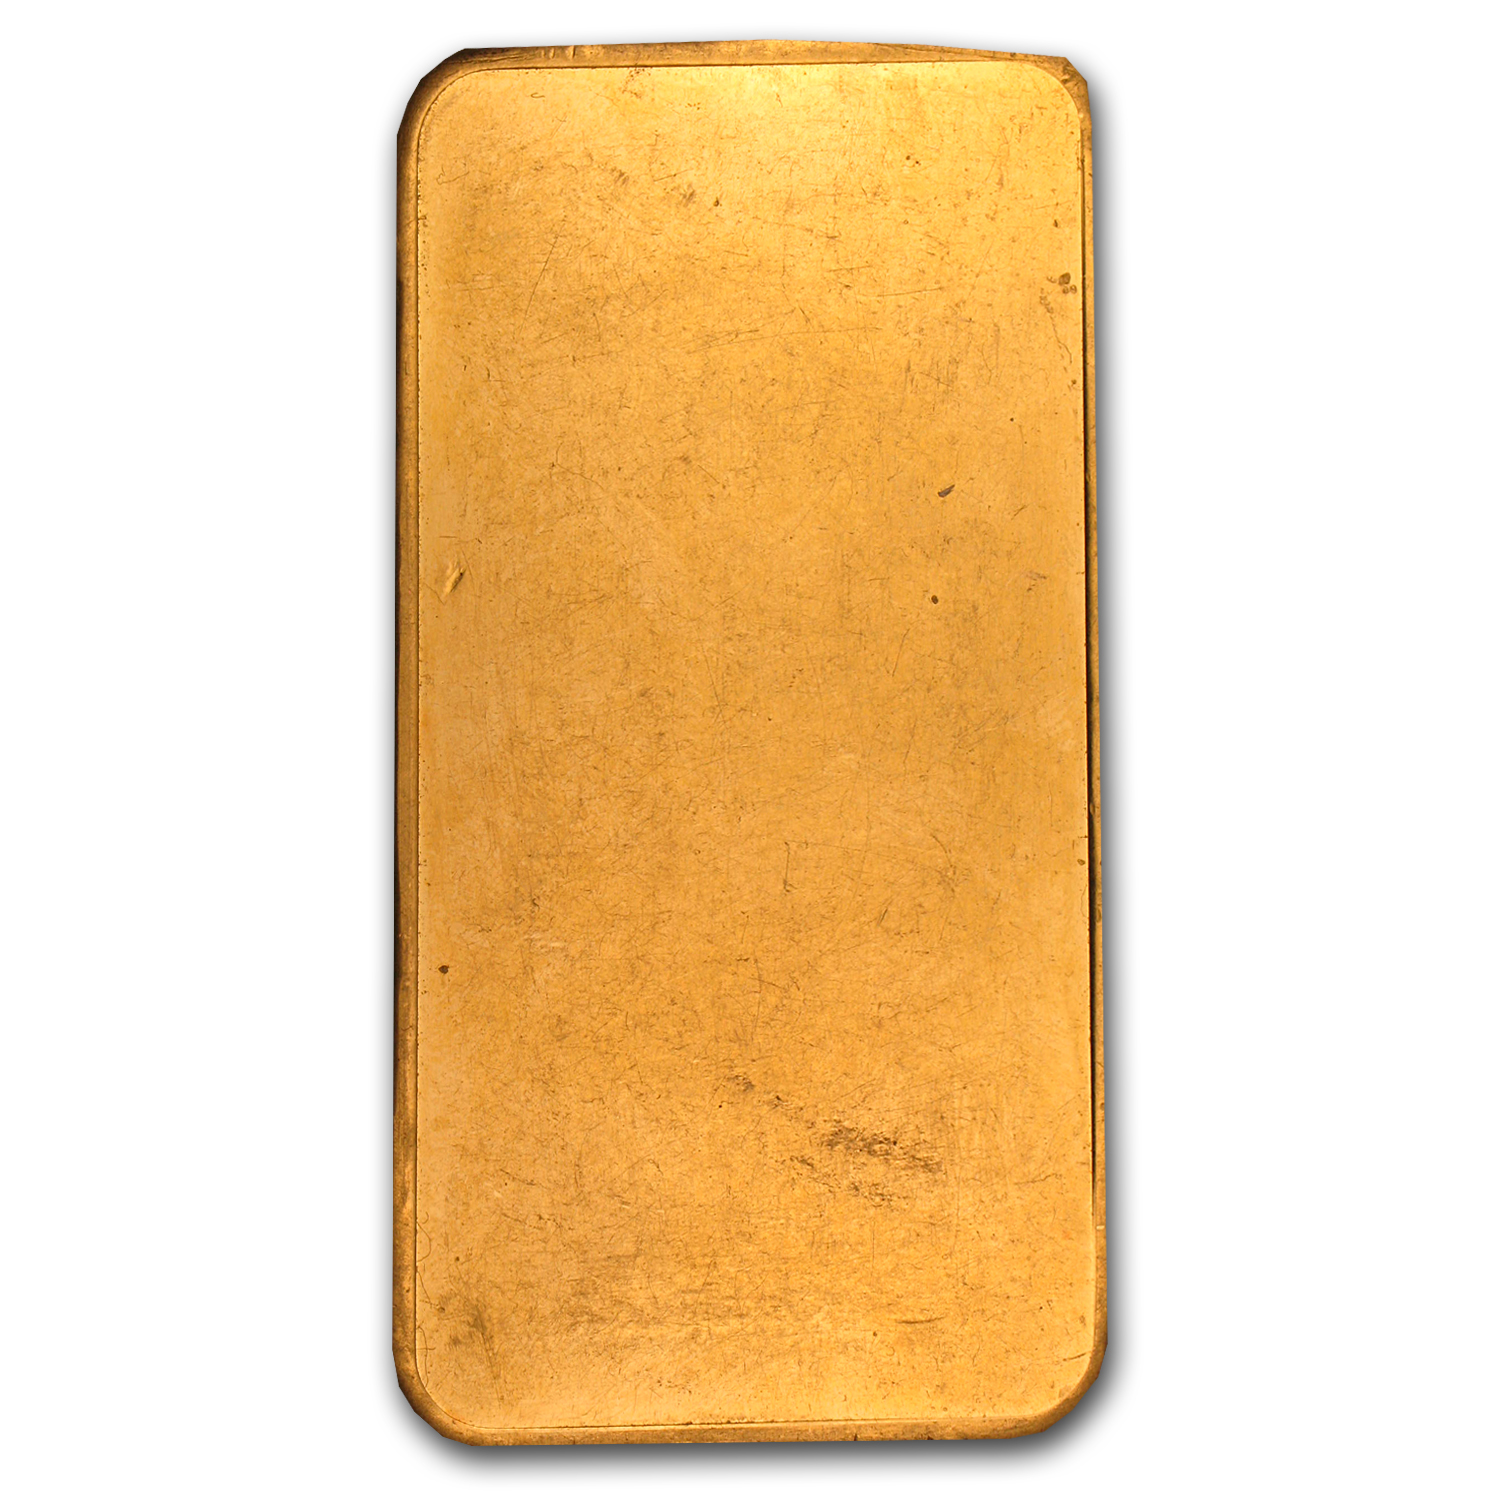 10 oz Gold Bar - Engelhard (Tall, Maple/Smooth)